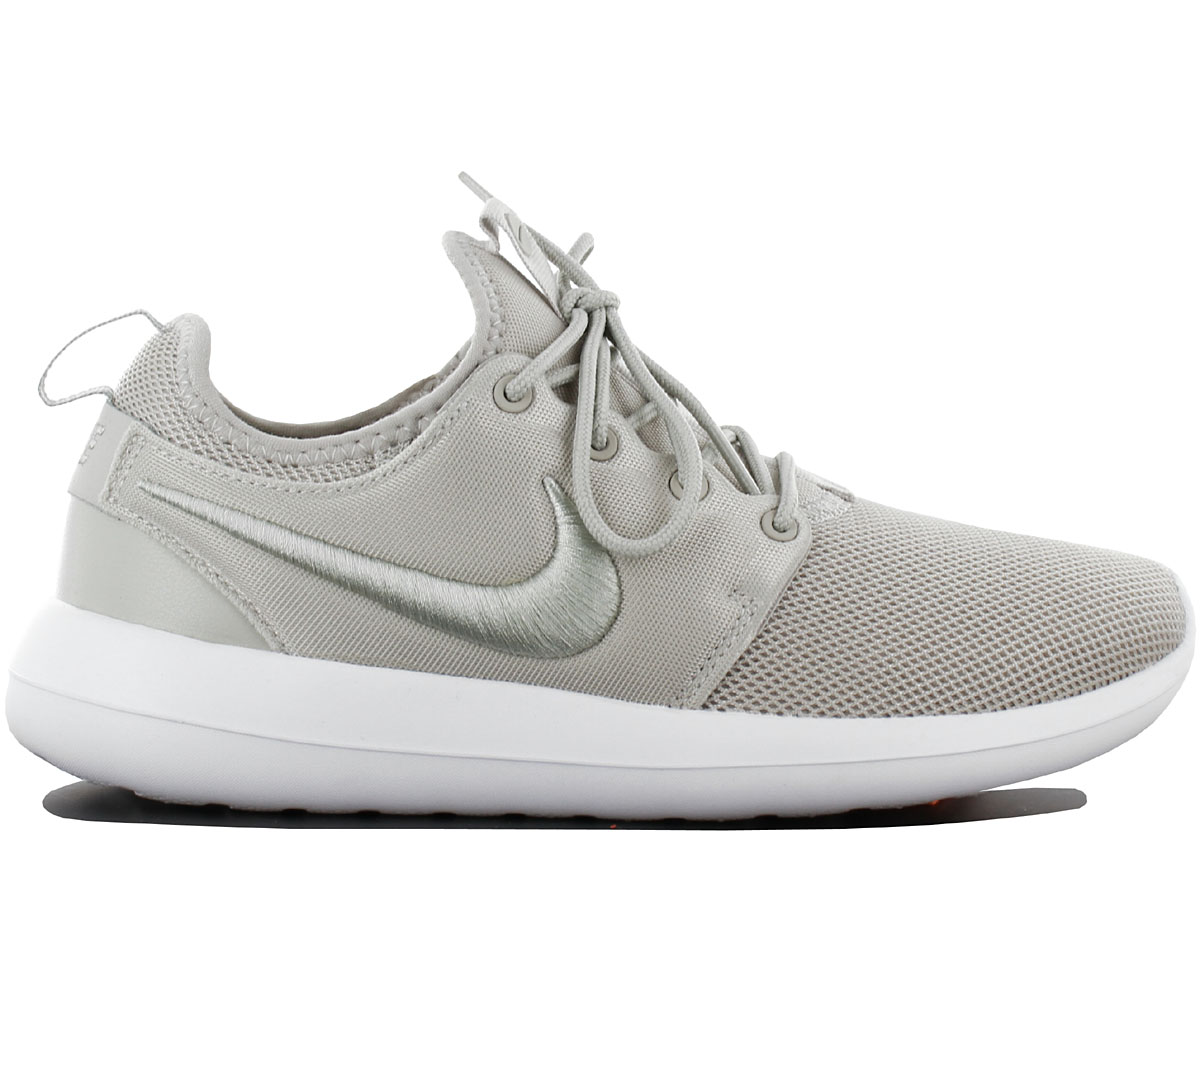 Details about Nike Roshe Two Br Breeze Ladies Sneaker Shoes Grey 896445 002 One Gym Shoe New